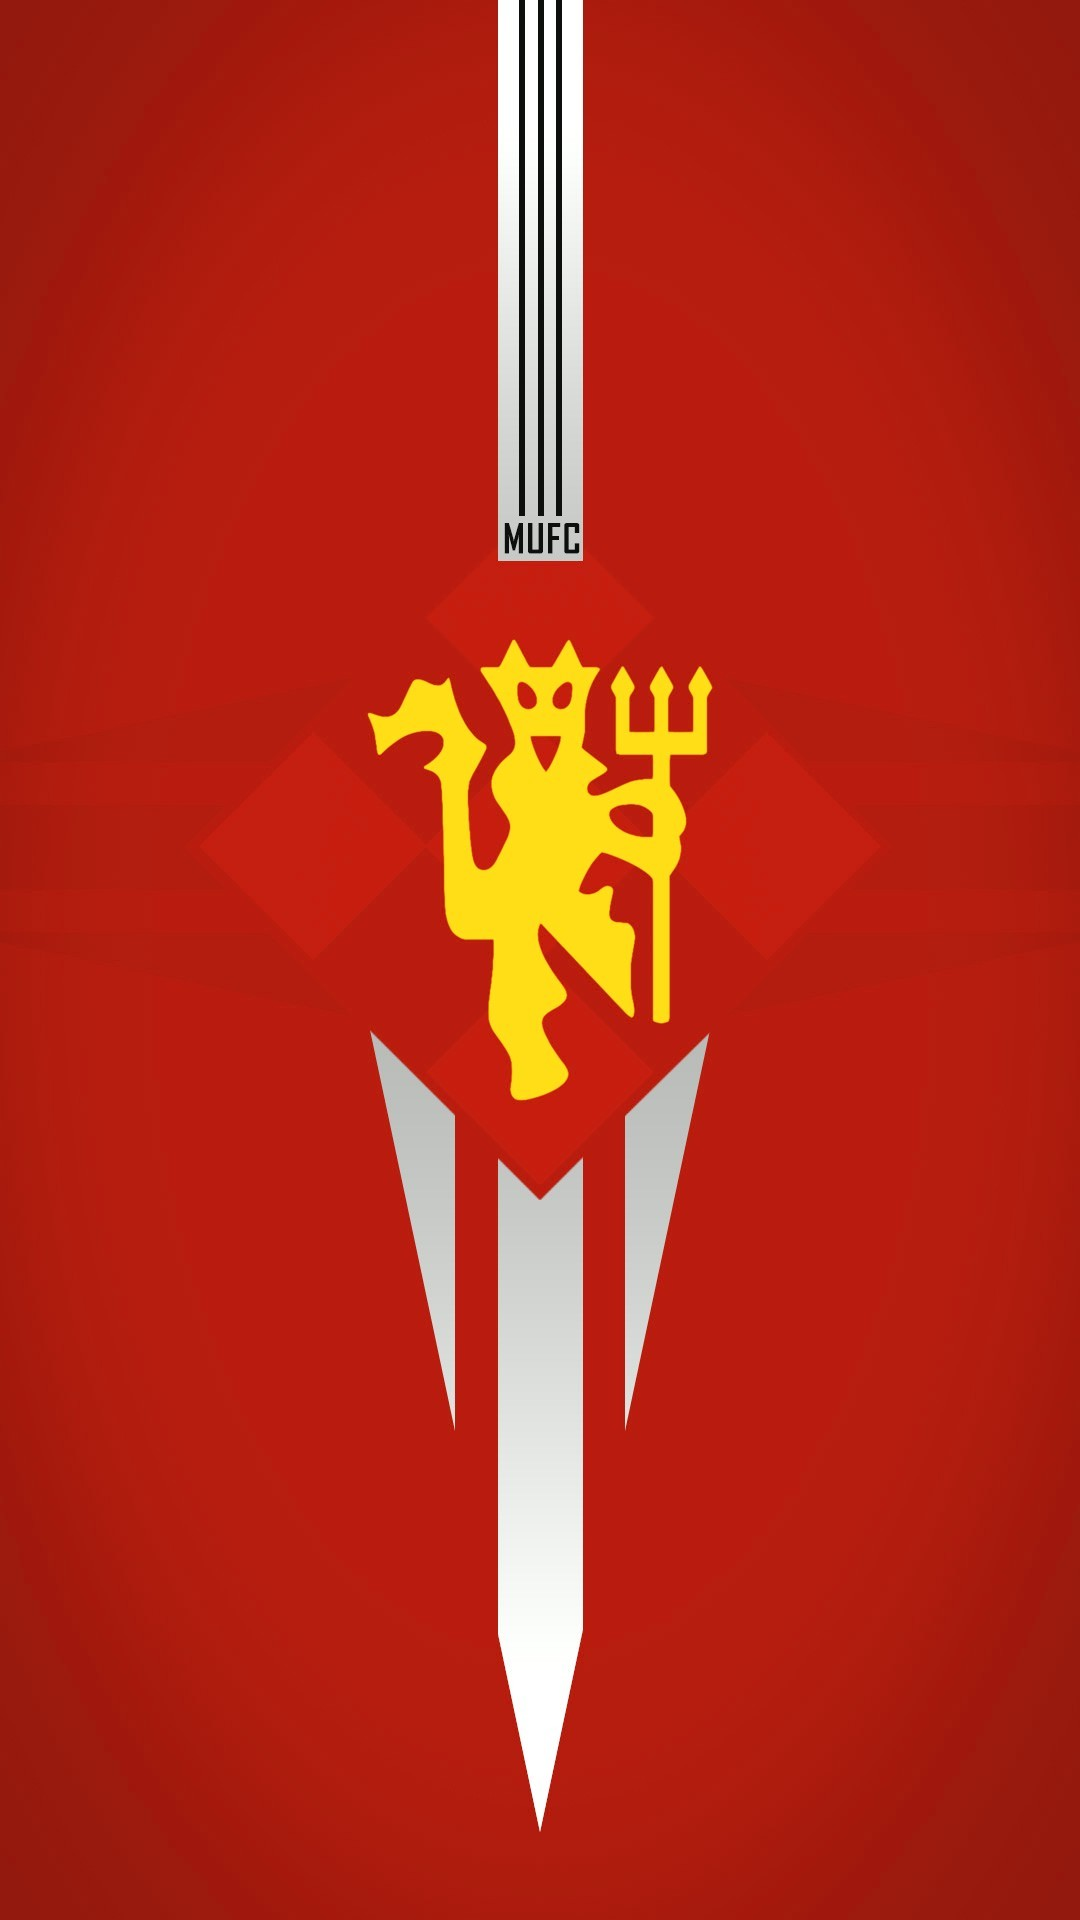 Manchester United Red Devils iPhone Wallpaper